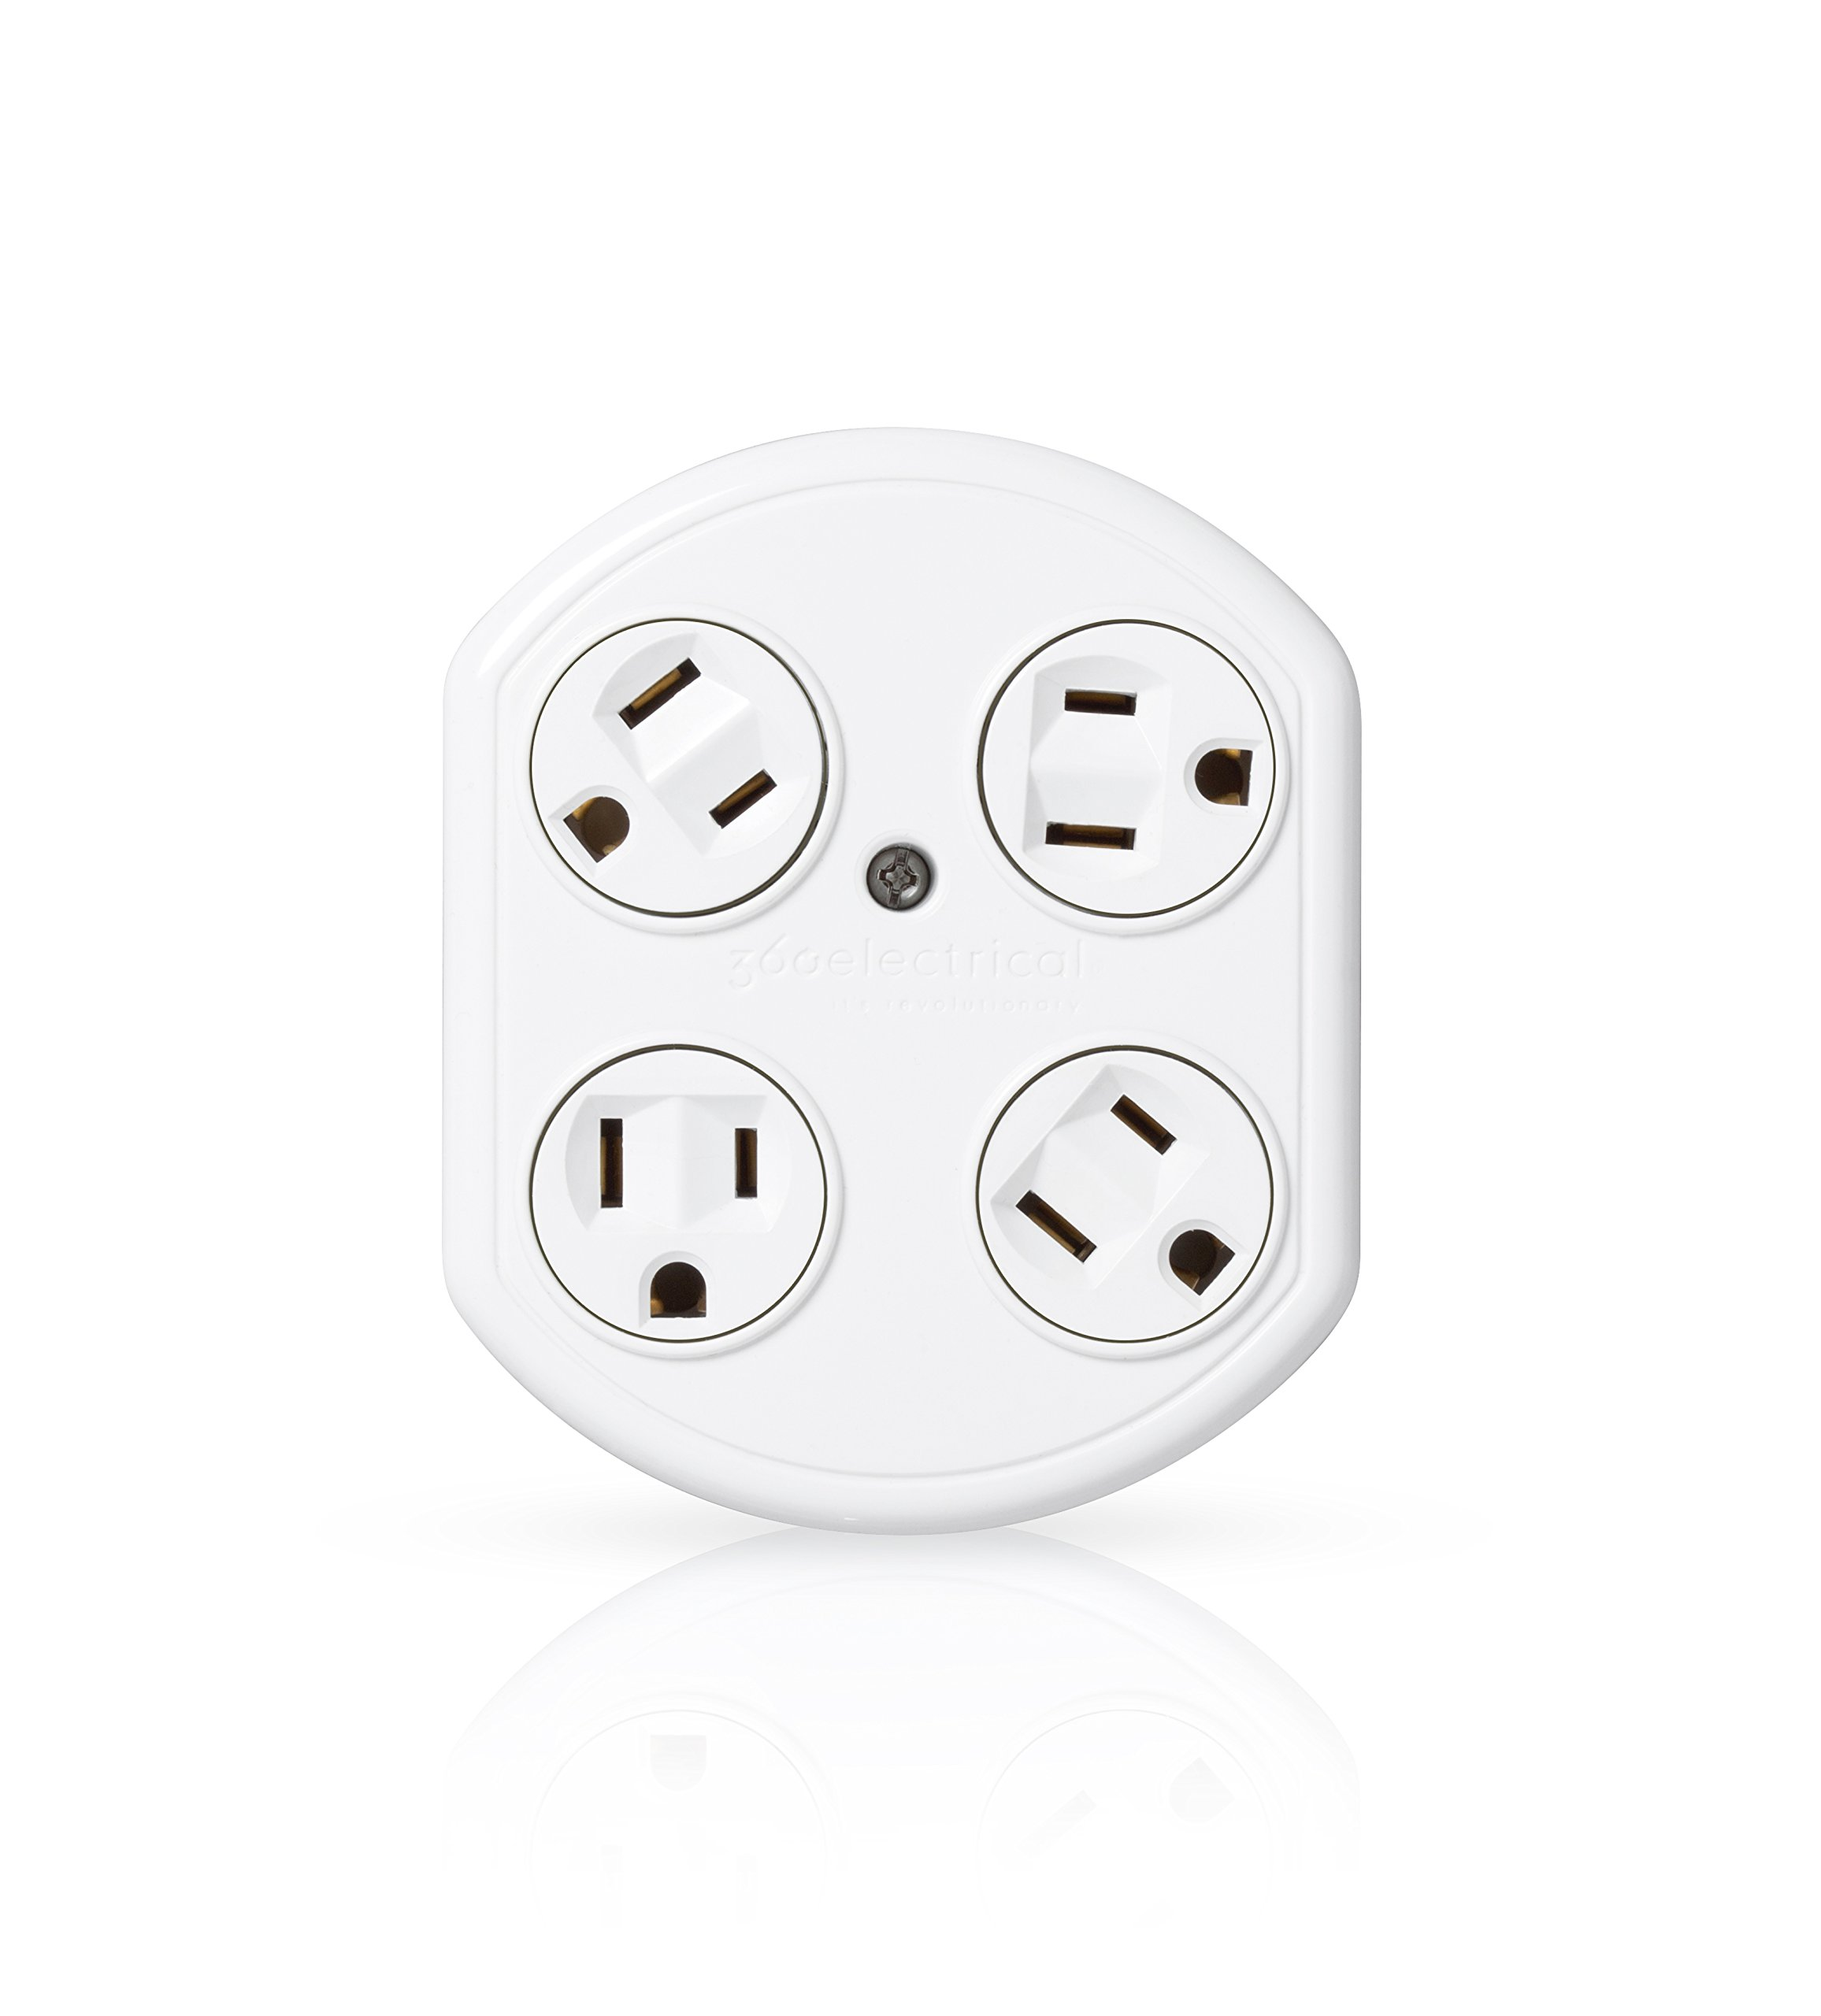 Buy Two Sets Of Three Electrical Outlet Adapters